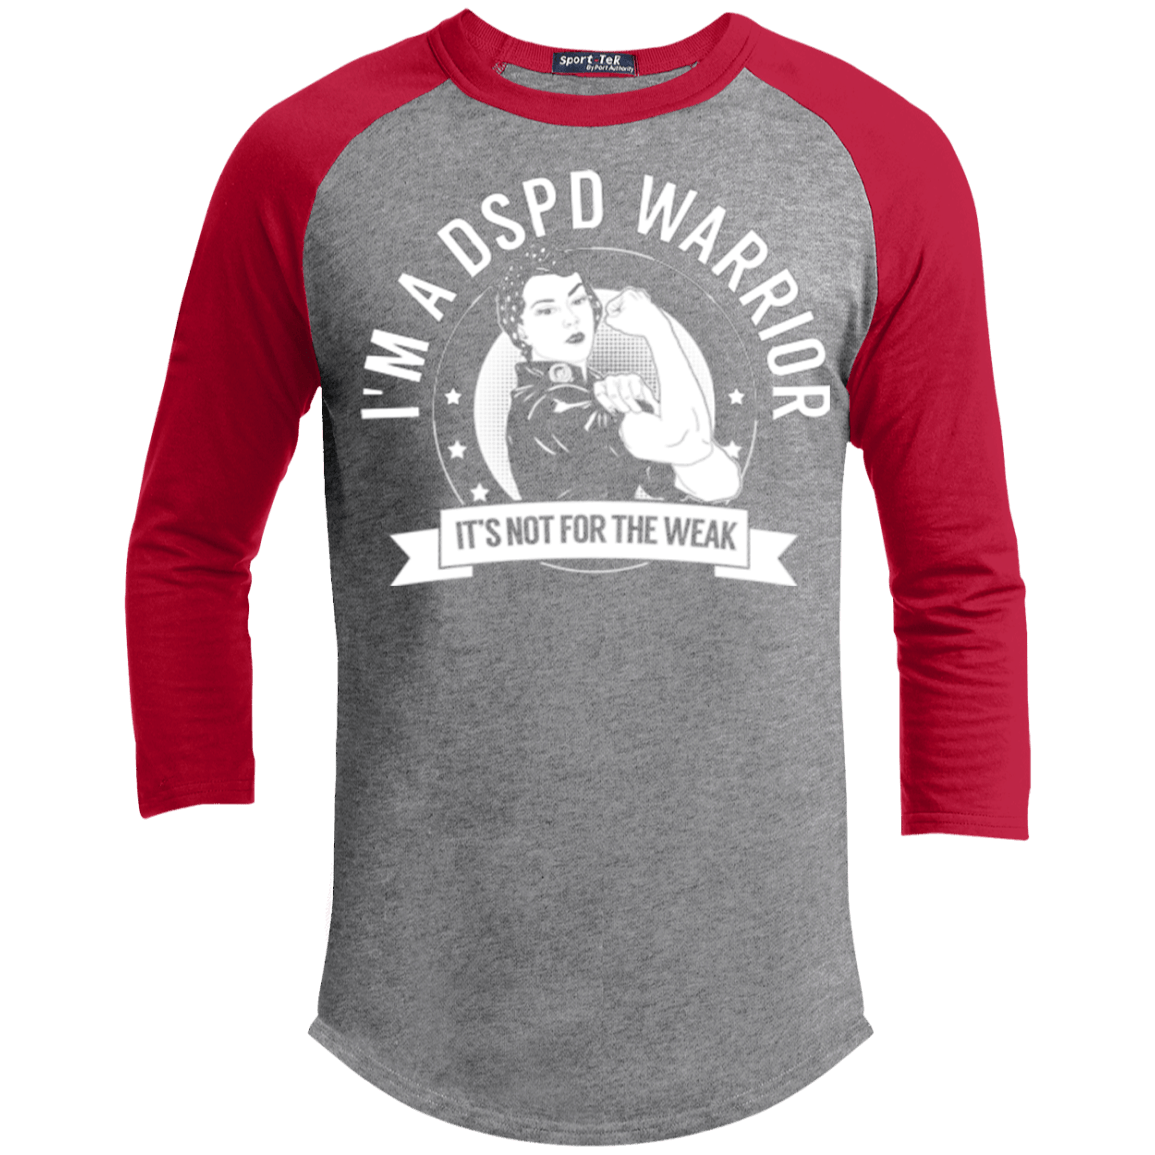 Delayed Sleep Phase Disorder - DSPD Warrior Not For The Weak Baseball Shirt - The Unchargeables